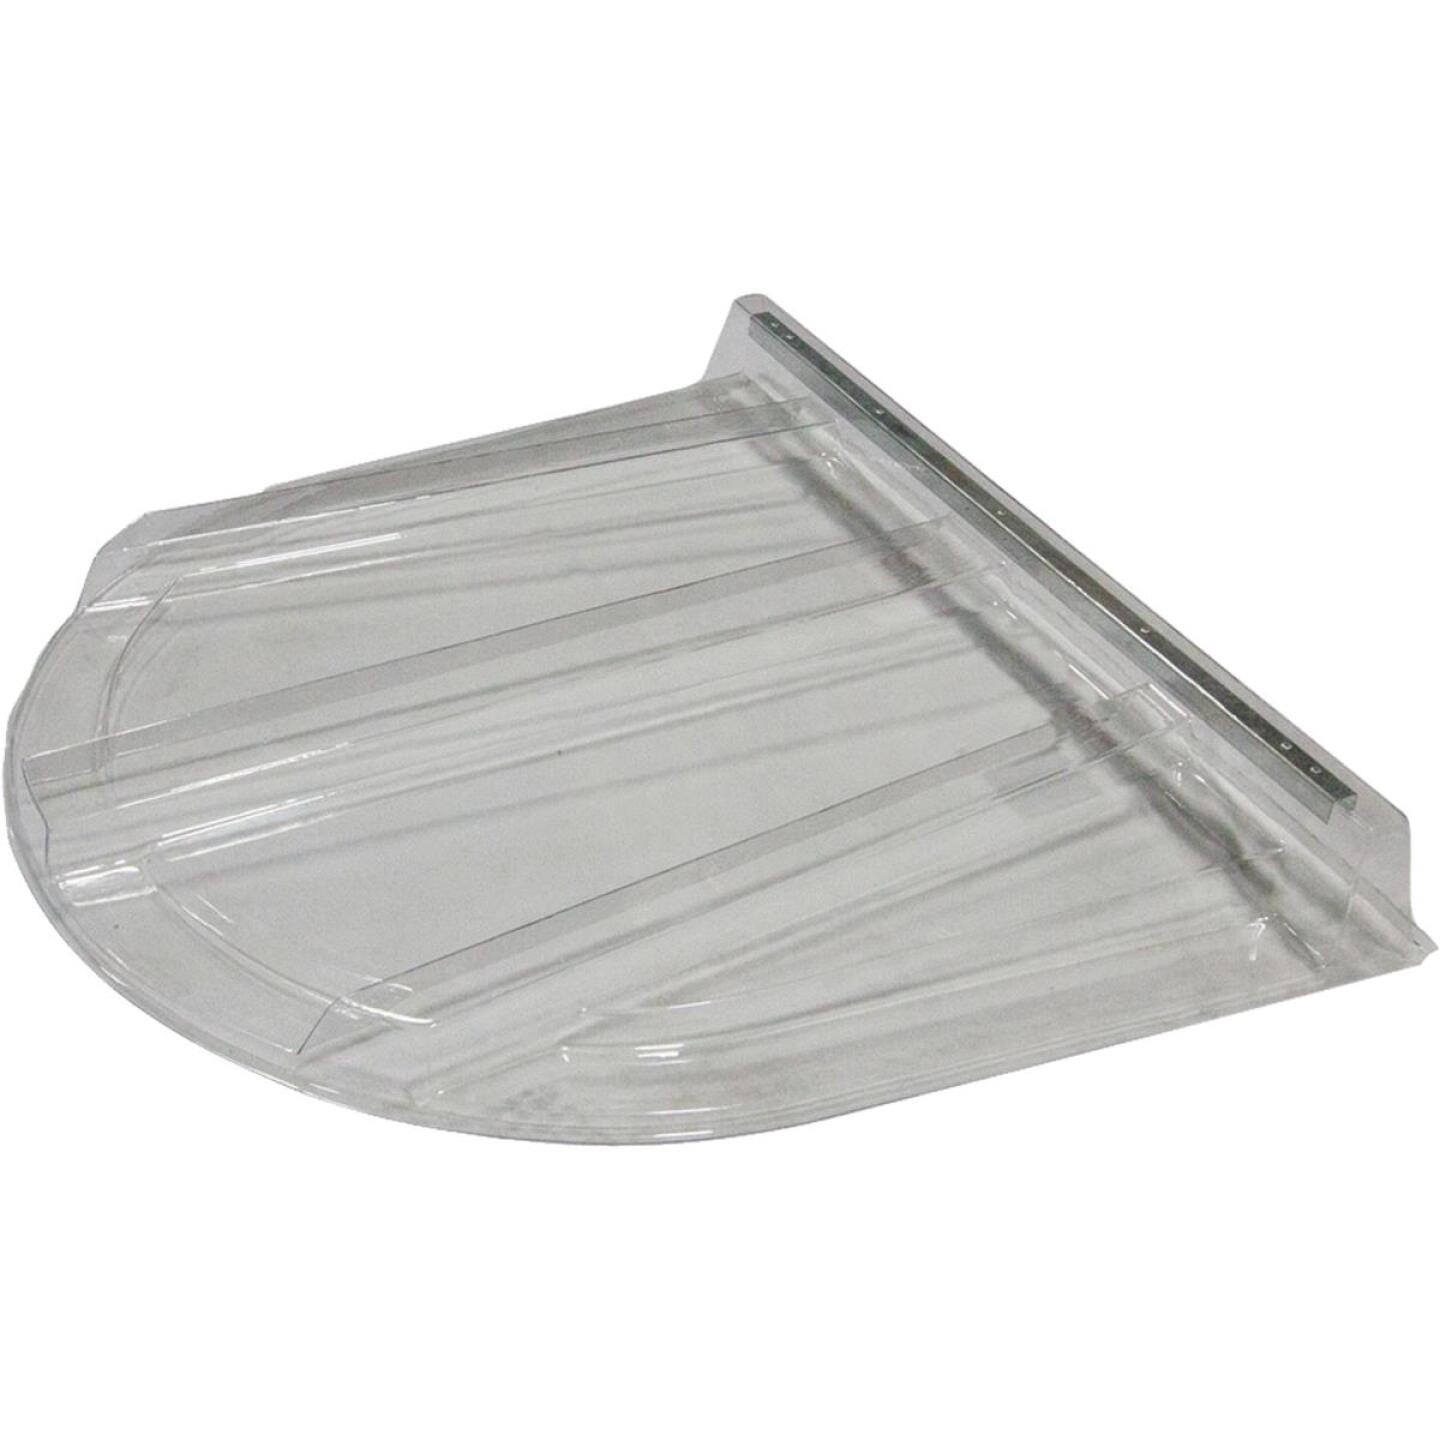 Wellcraft 75 In. x 46 In. Polycarbonate Window Well Flat Cover Image 1